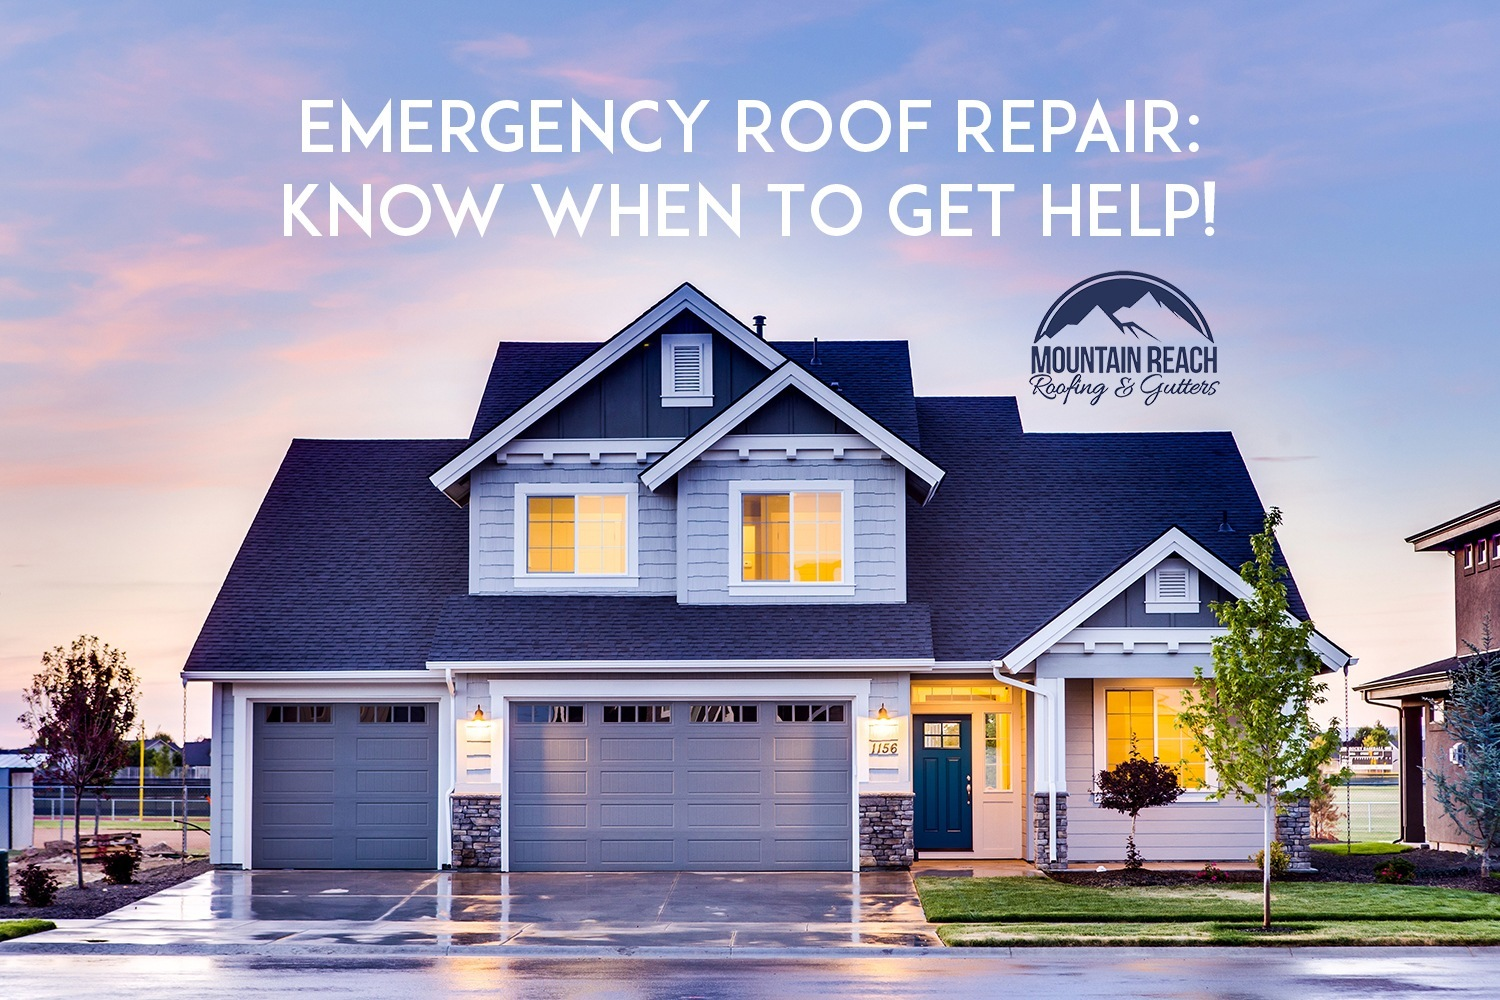 Emergency Roof Repair Know When To Get Help